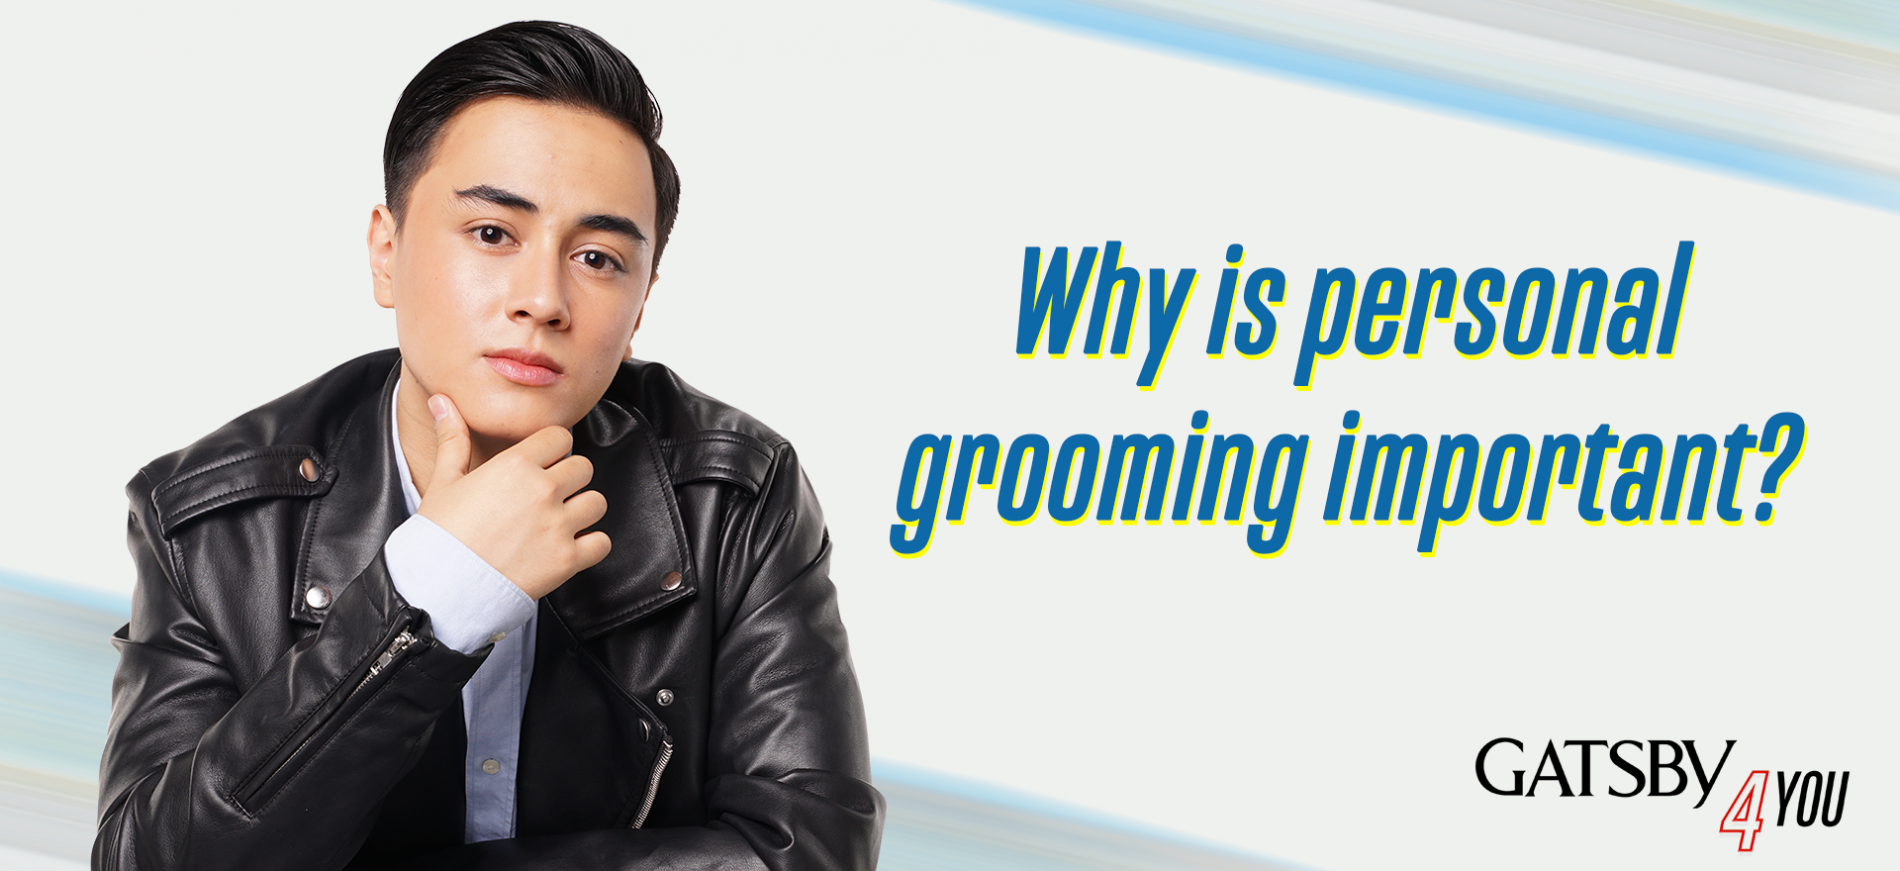 GATSBY Philippines Article Why is personal grooming for men important